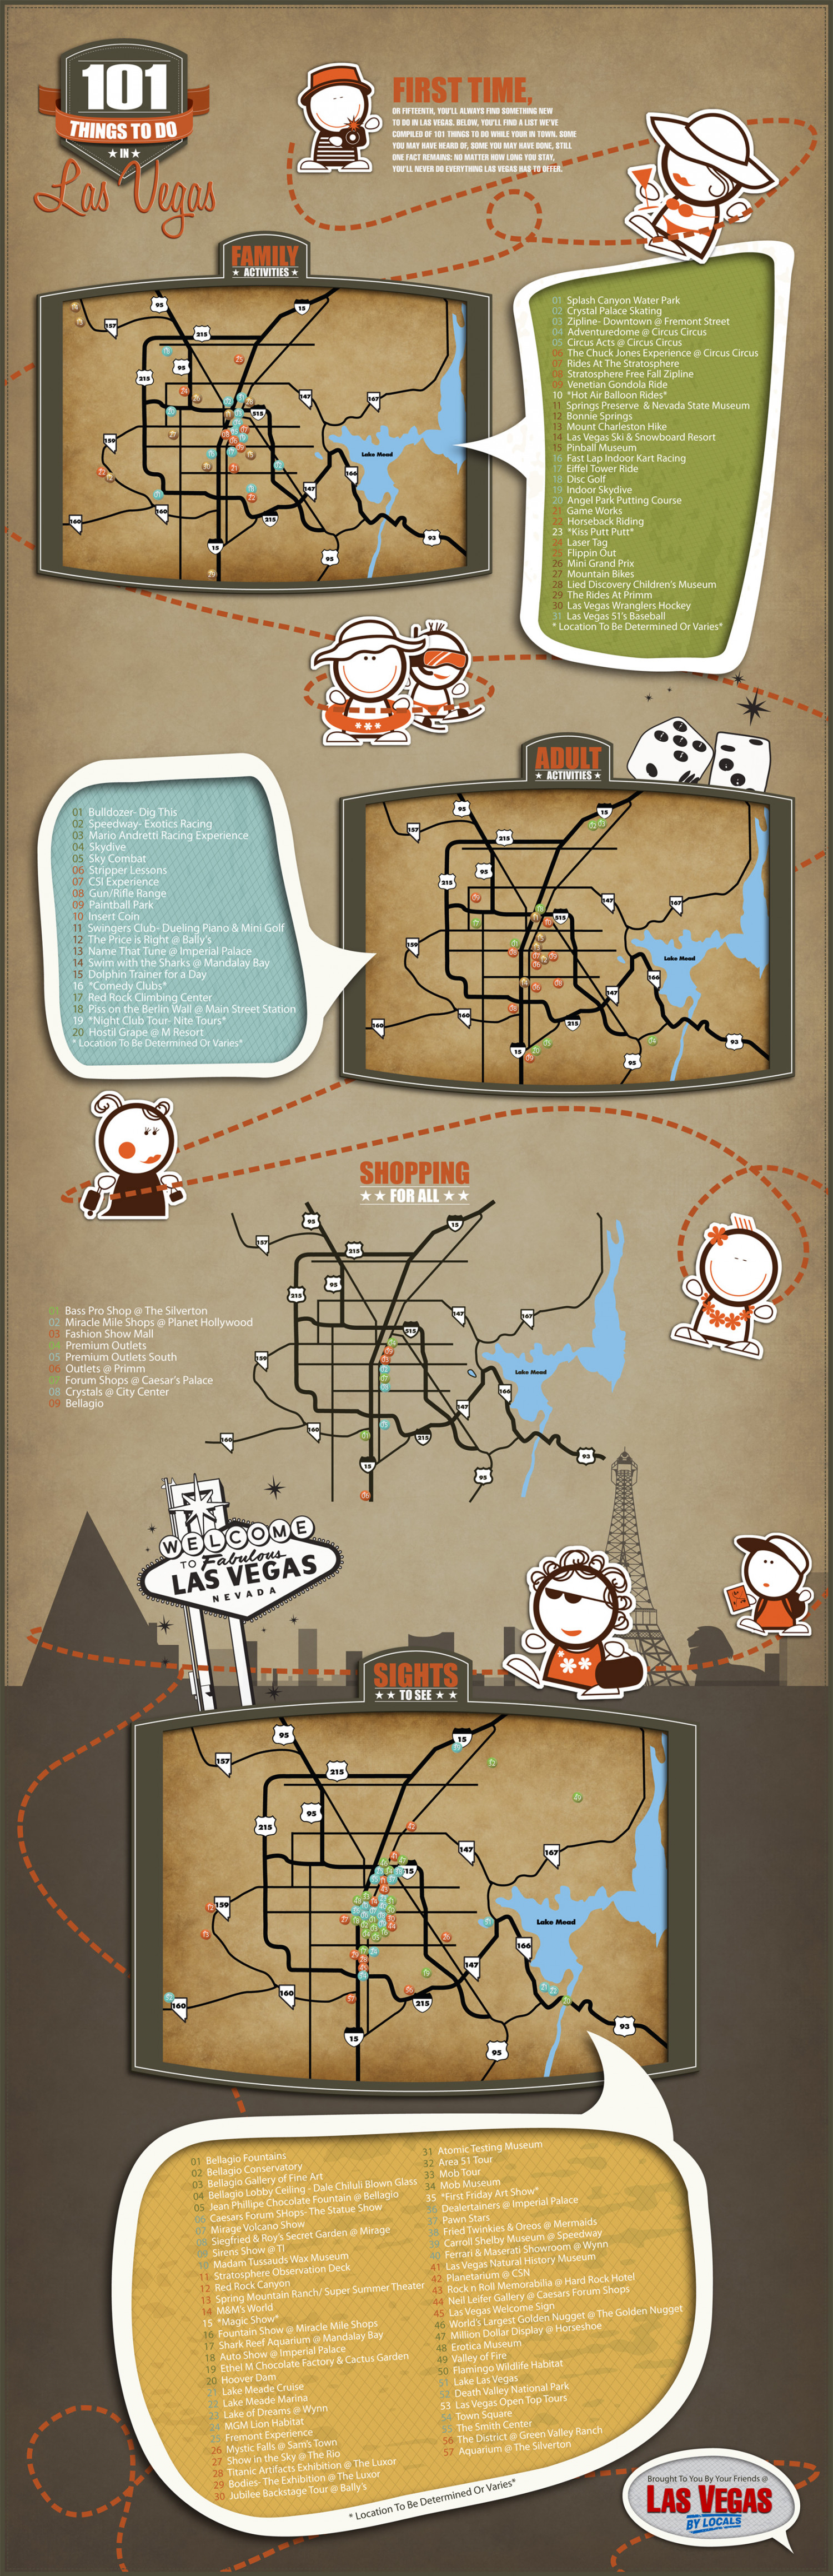 101 Things to do in Las Vegas Infographic